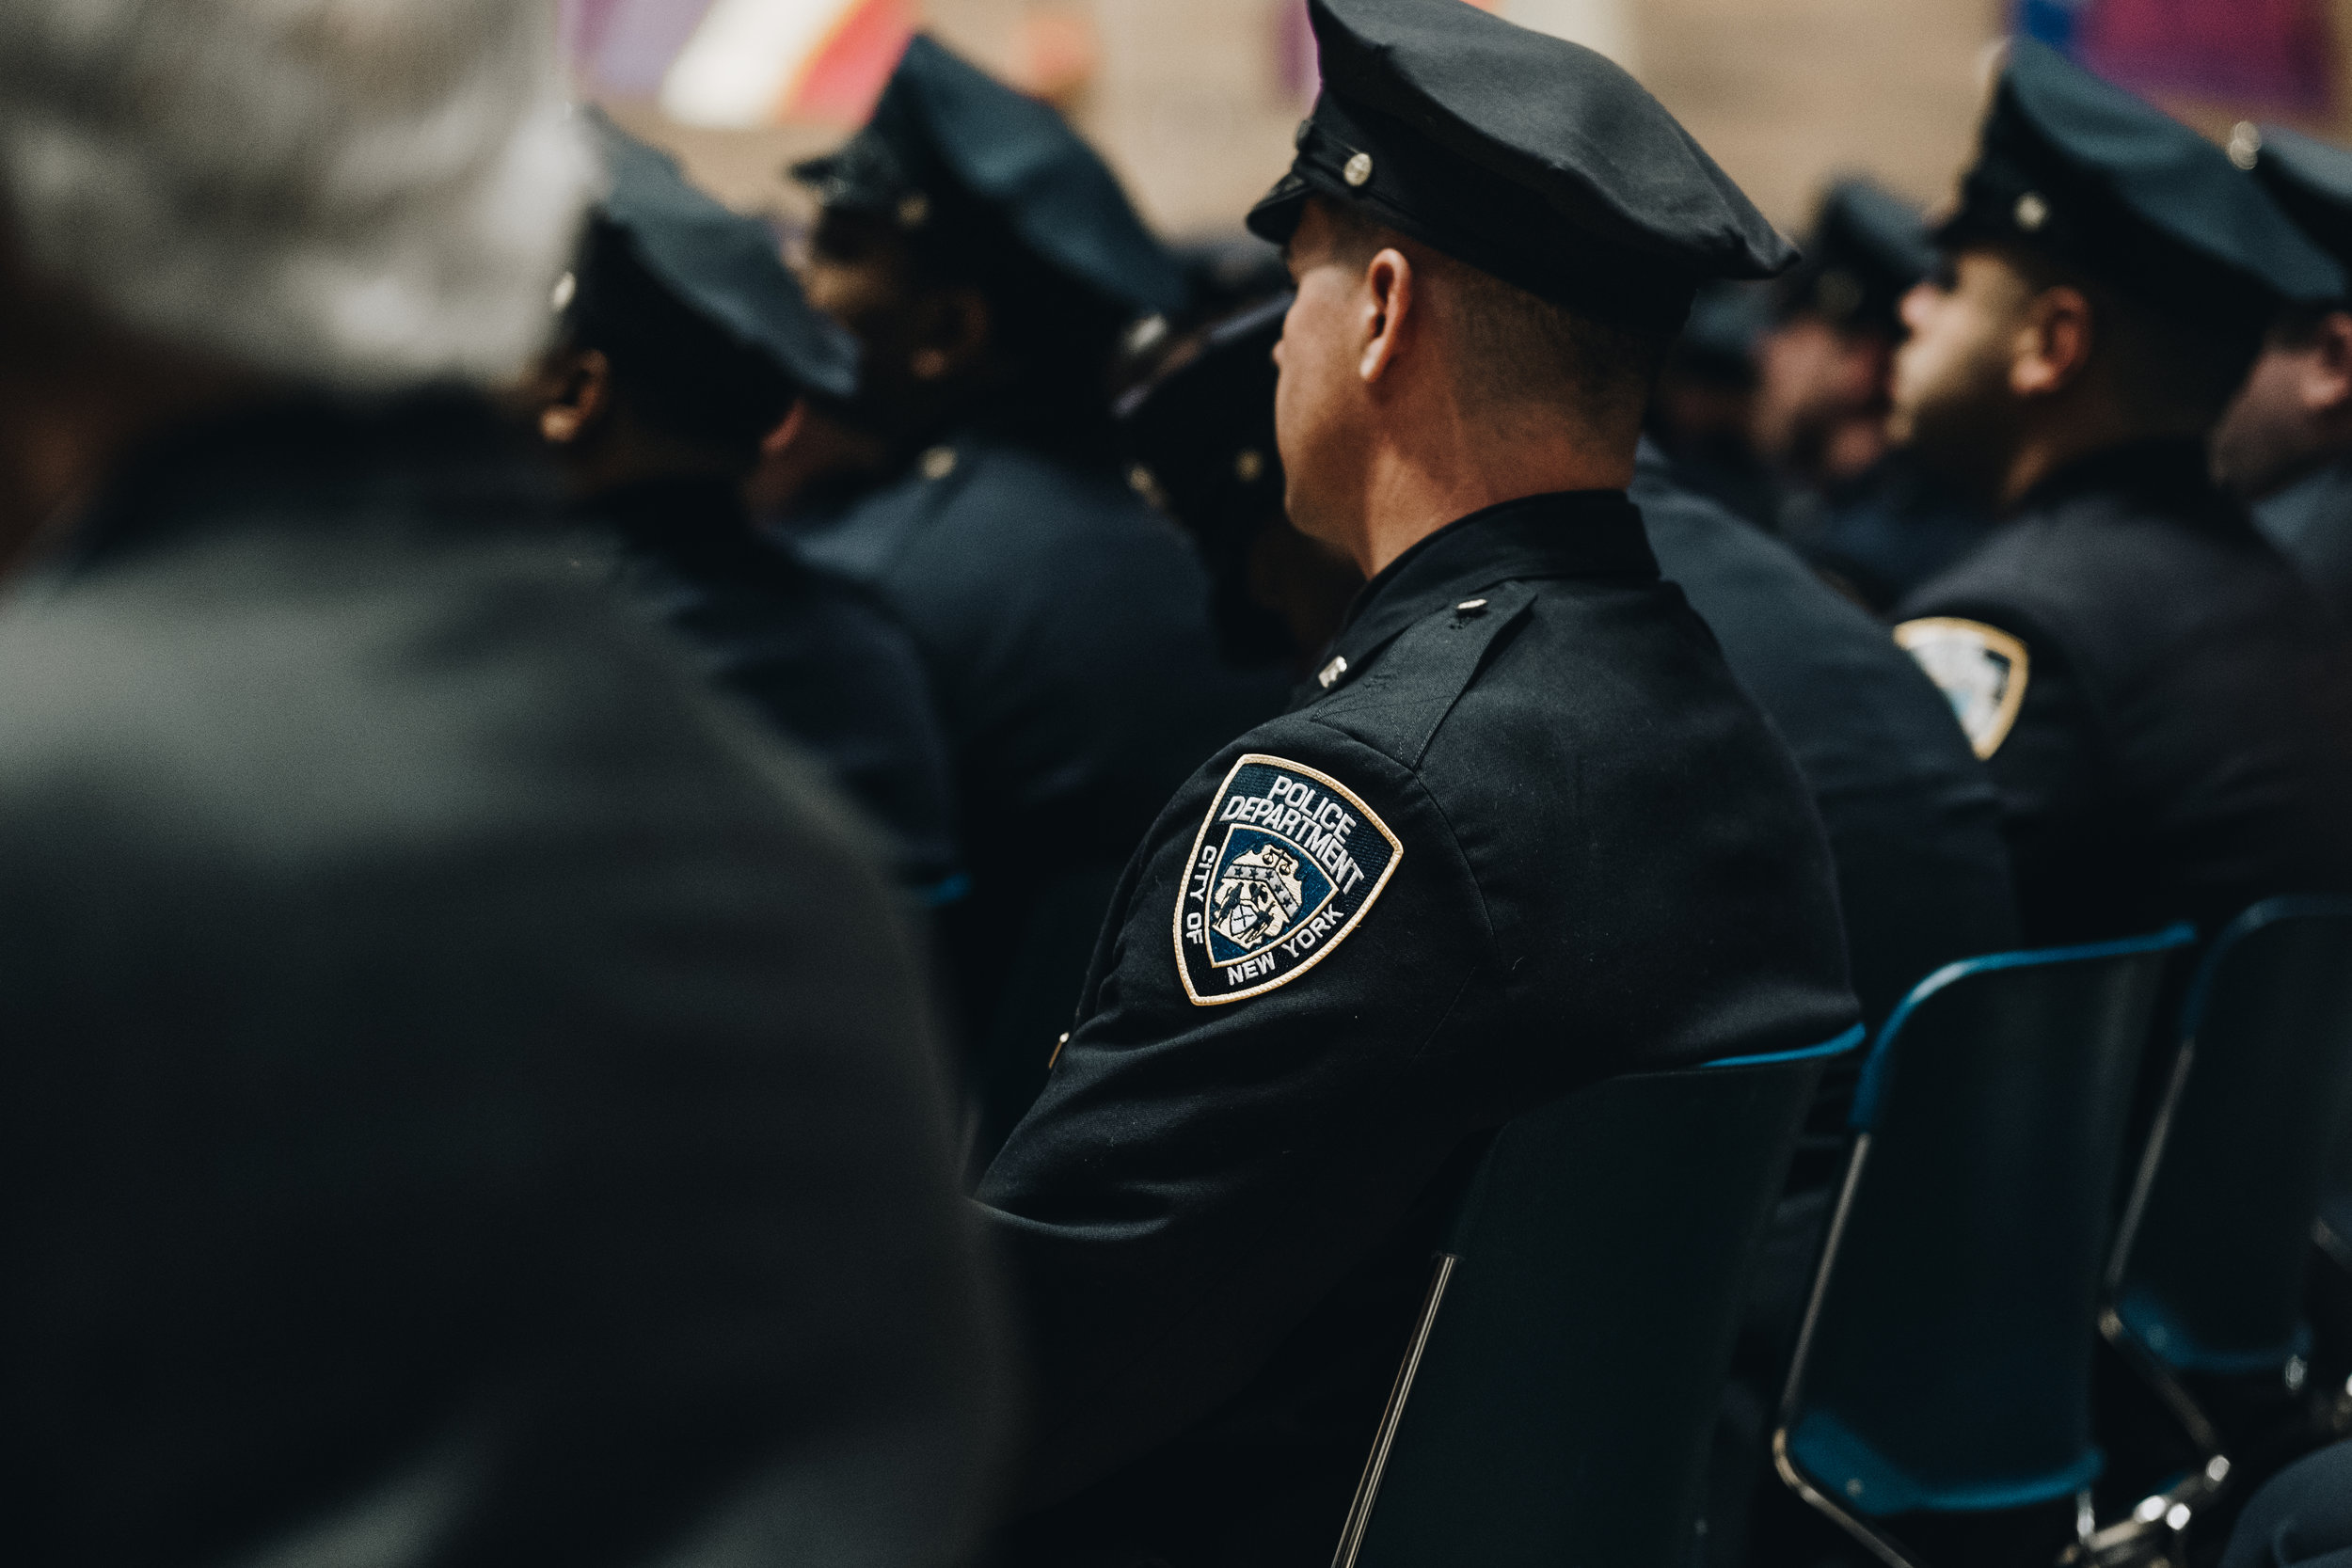 NYPD_Promotions-23.jpg